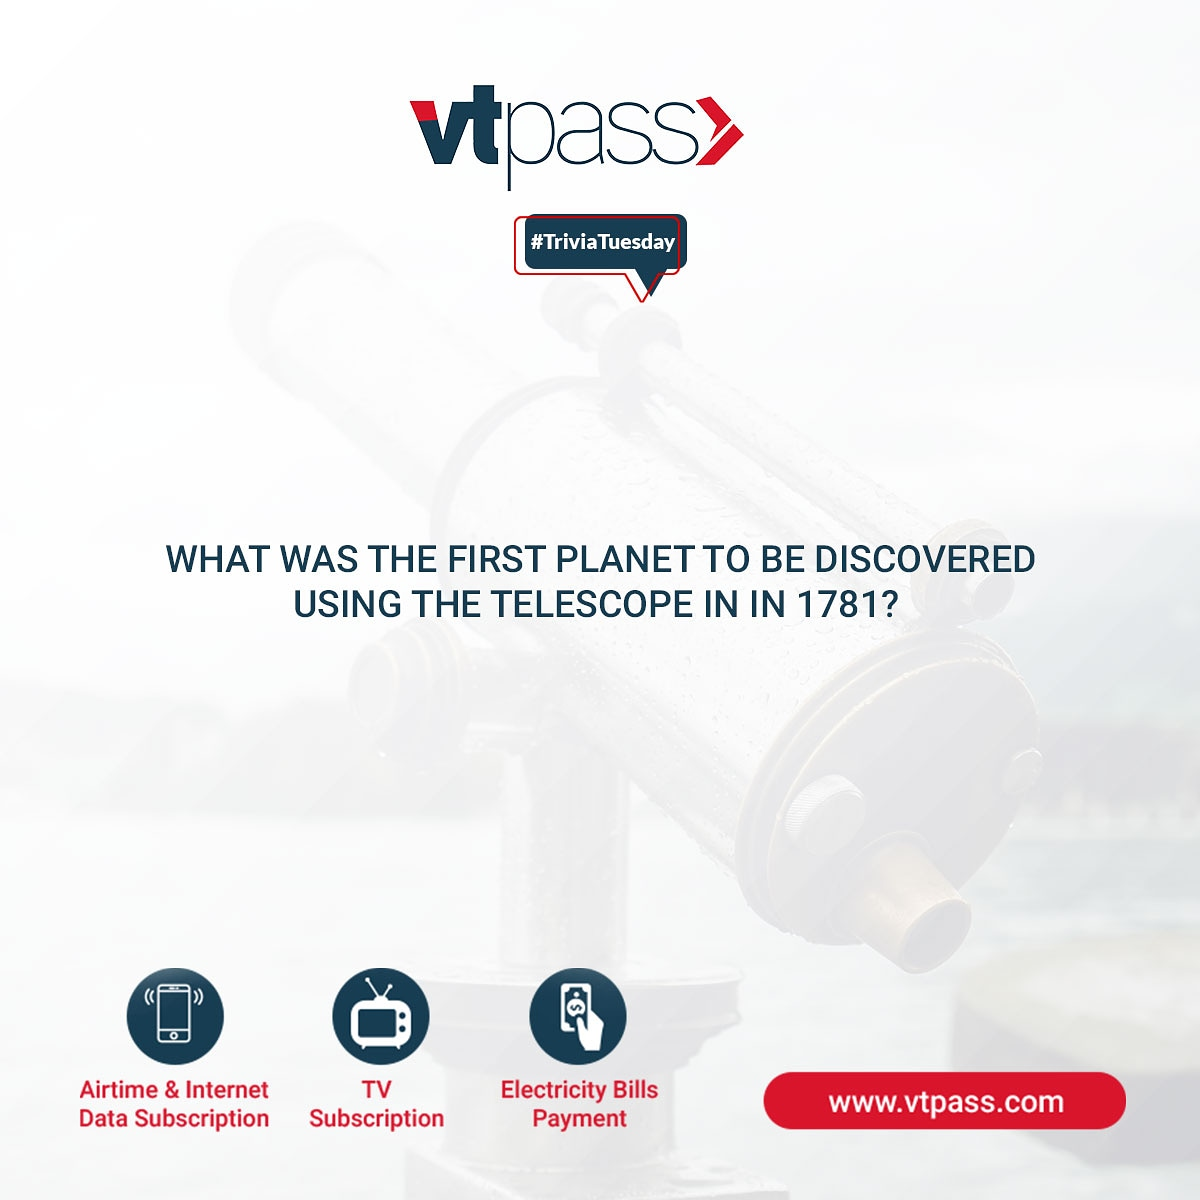 Which planet was the first to be discovered using the telescope? #vtpass #vtpasstrivia #triviatime #triviacrack #teusdaytrivia #triviagame #triviatuesday #trivia #like4likes #likeforlikes #like4follow #like4likesback #likeforlikeandfollow #insta #instalikerpic.twitter.com/pz5YmgnP6H